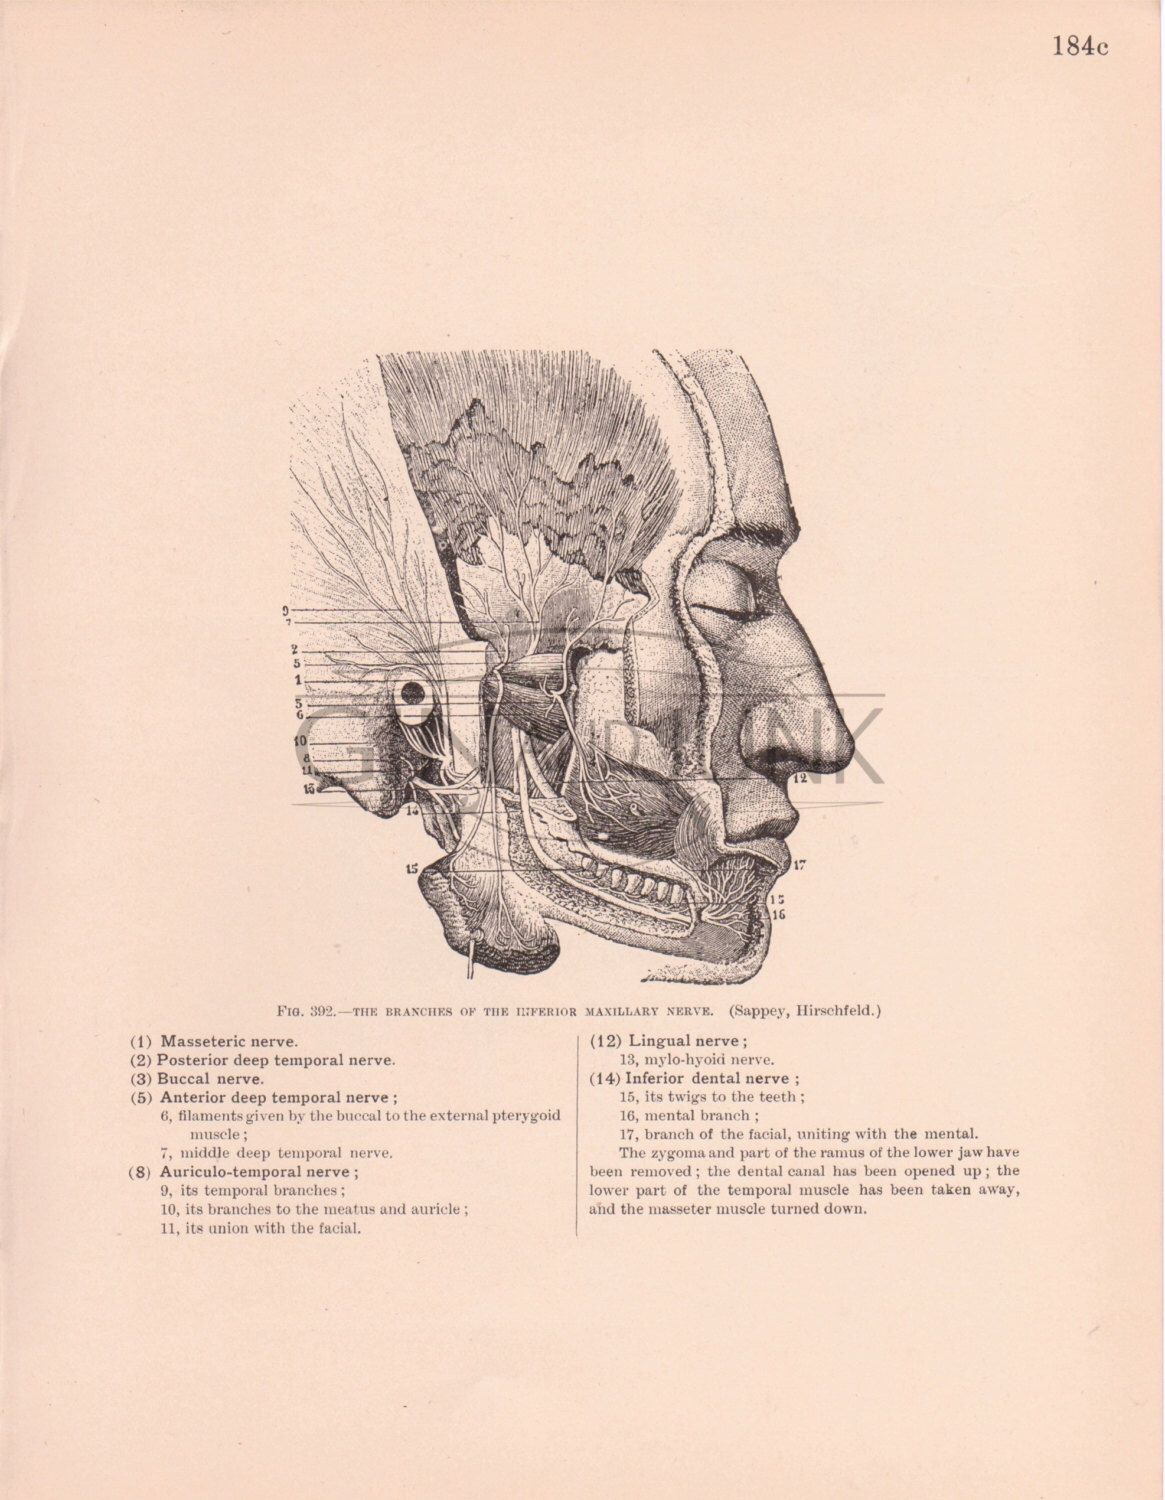 Antique Anatomy illustration of the Human Facial nerves and skull ...